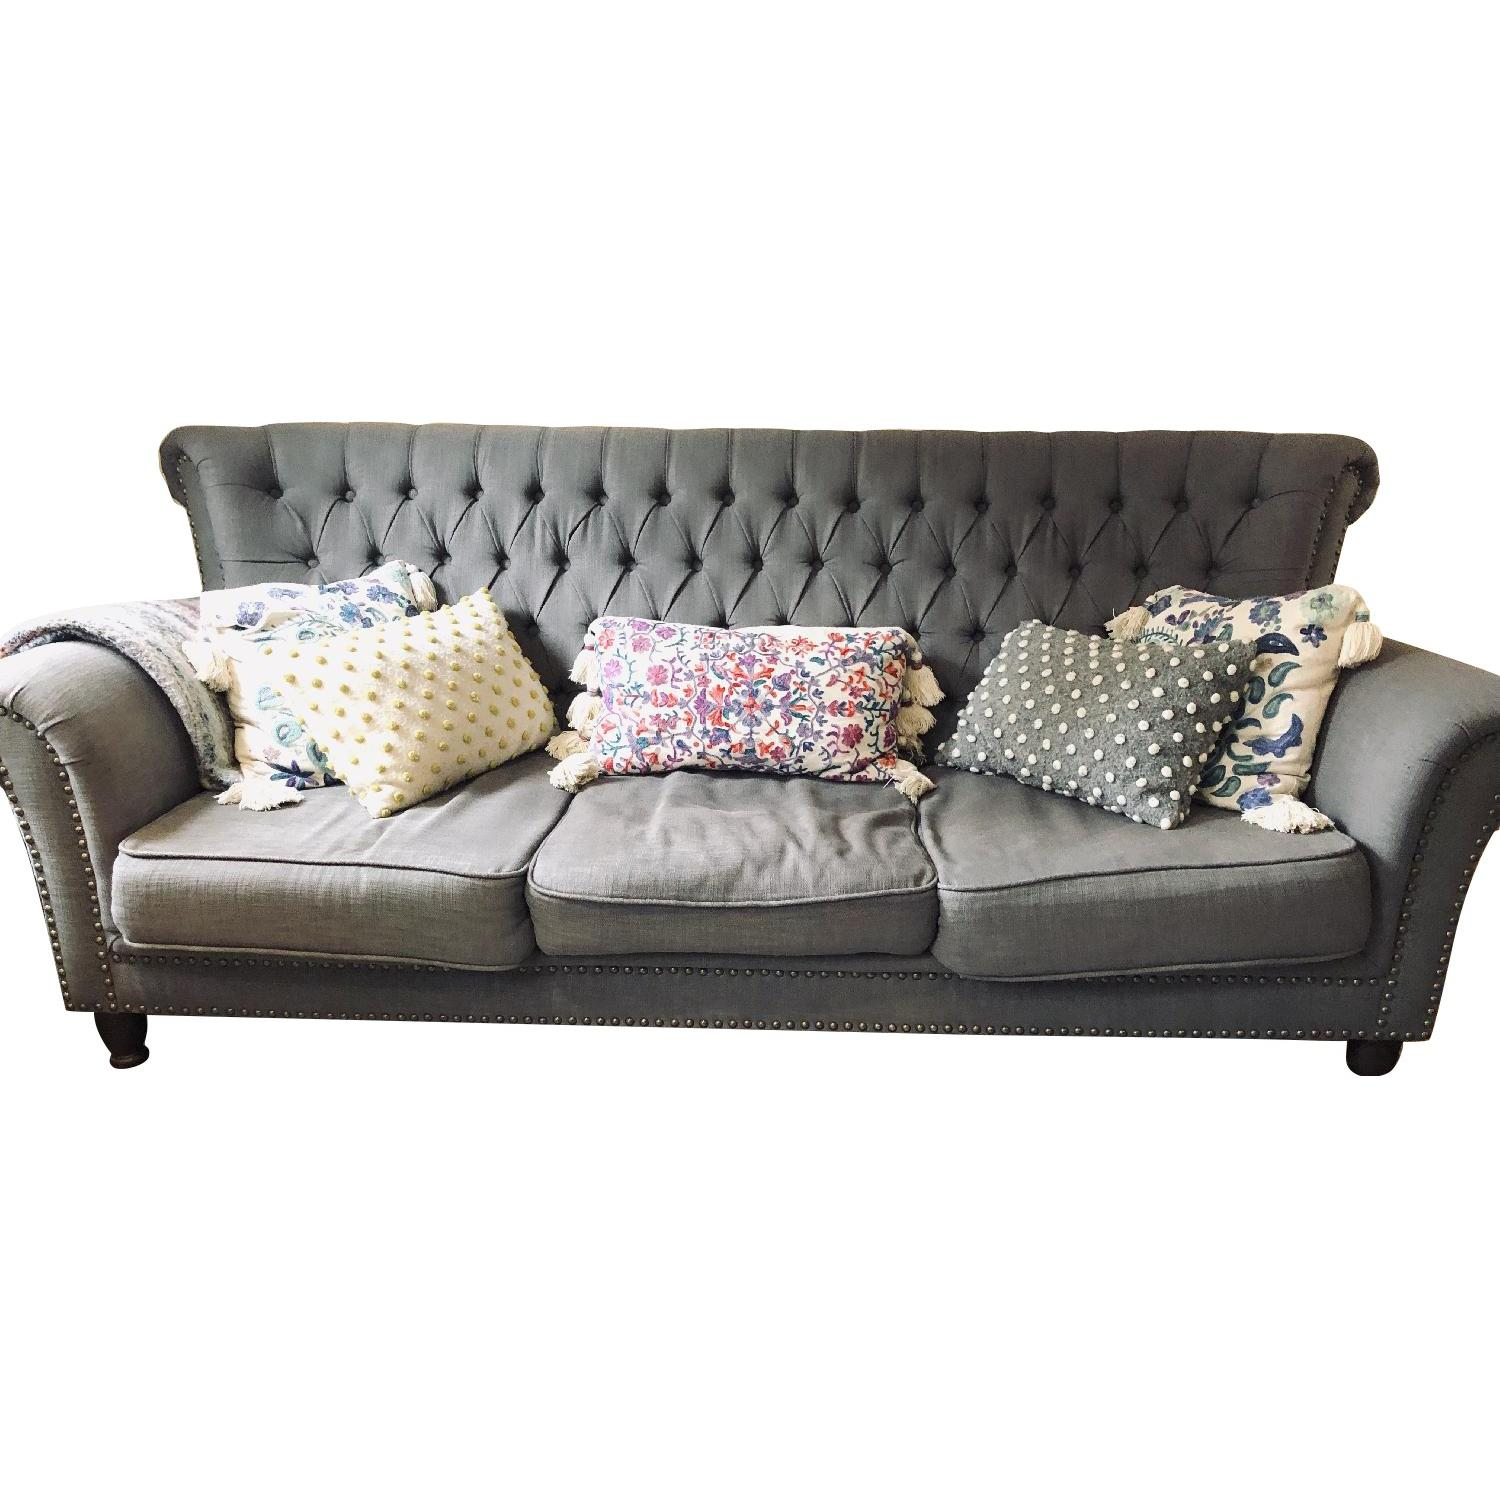 ABC Carpet and Home Wingback Sofa